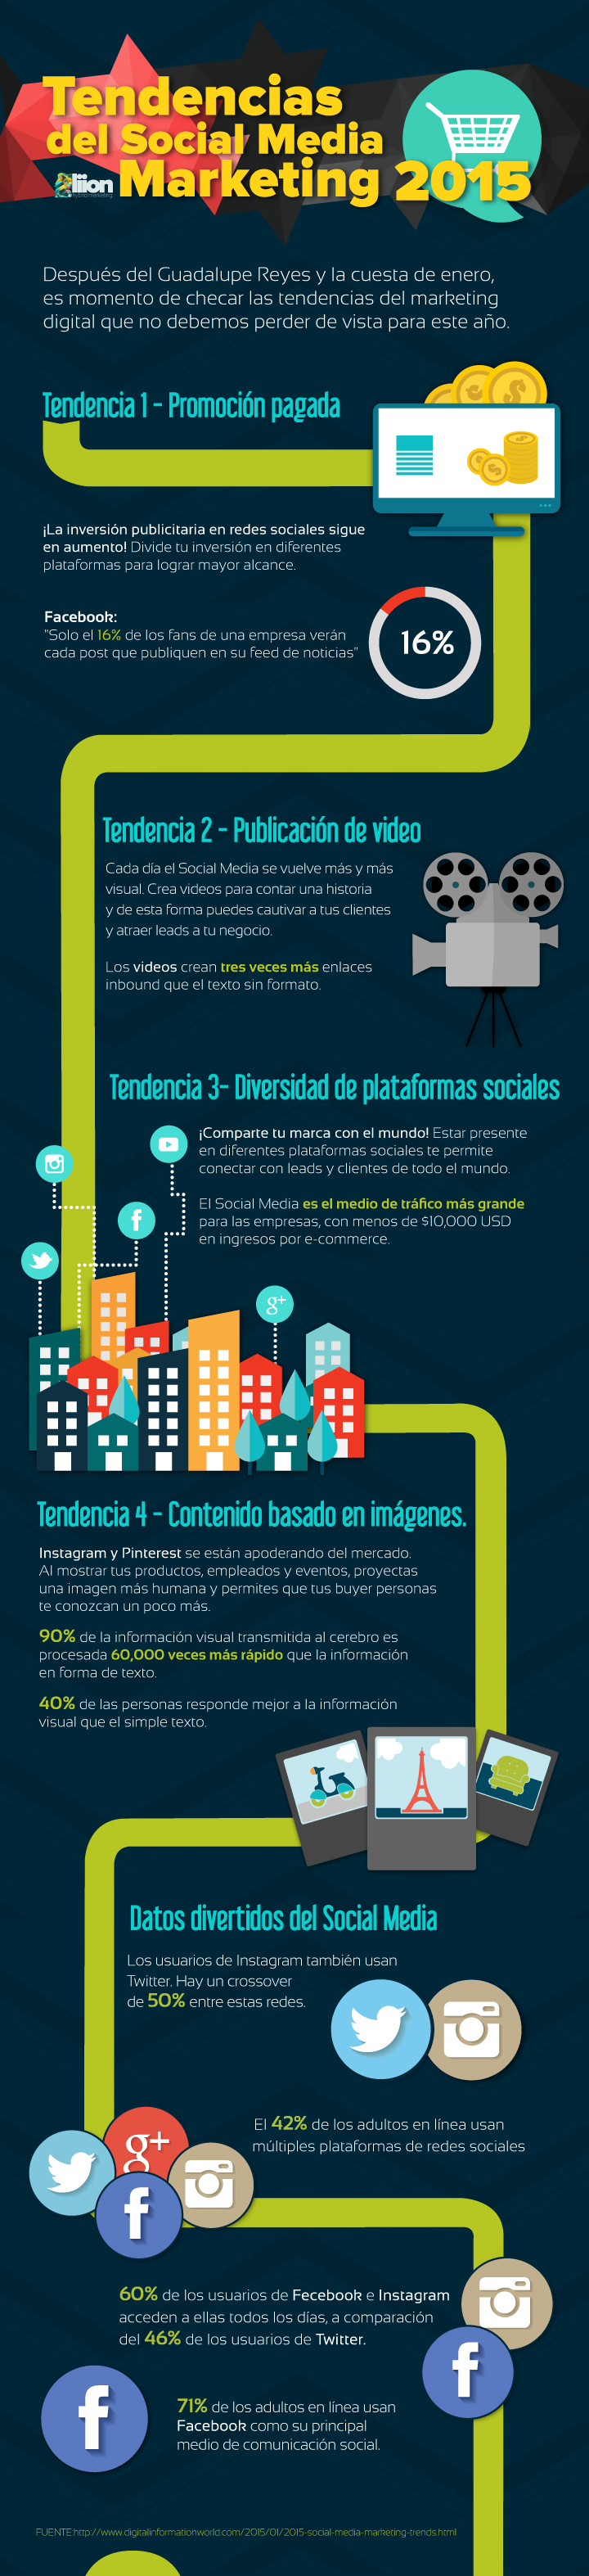 Tendencias Social Media Marketing 2015